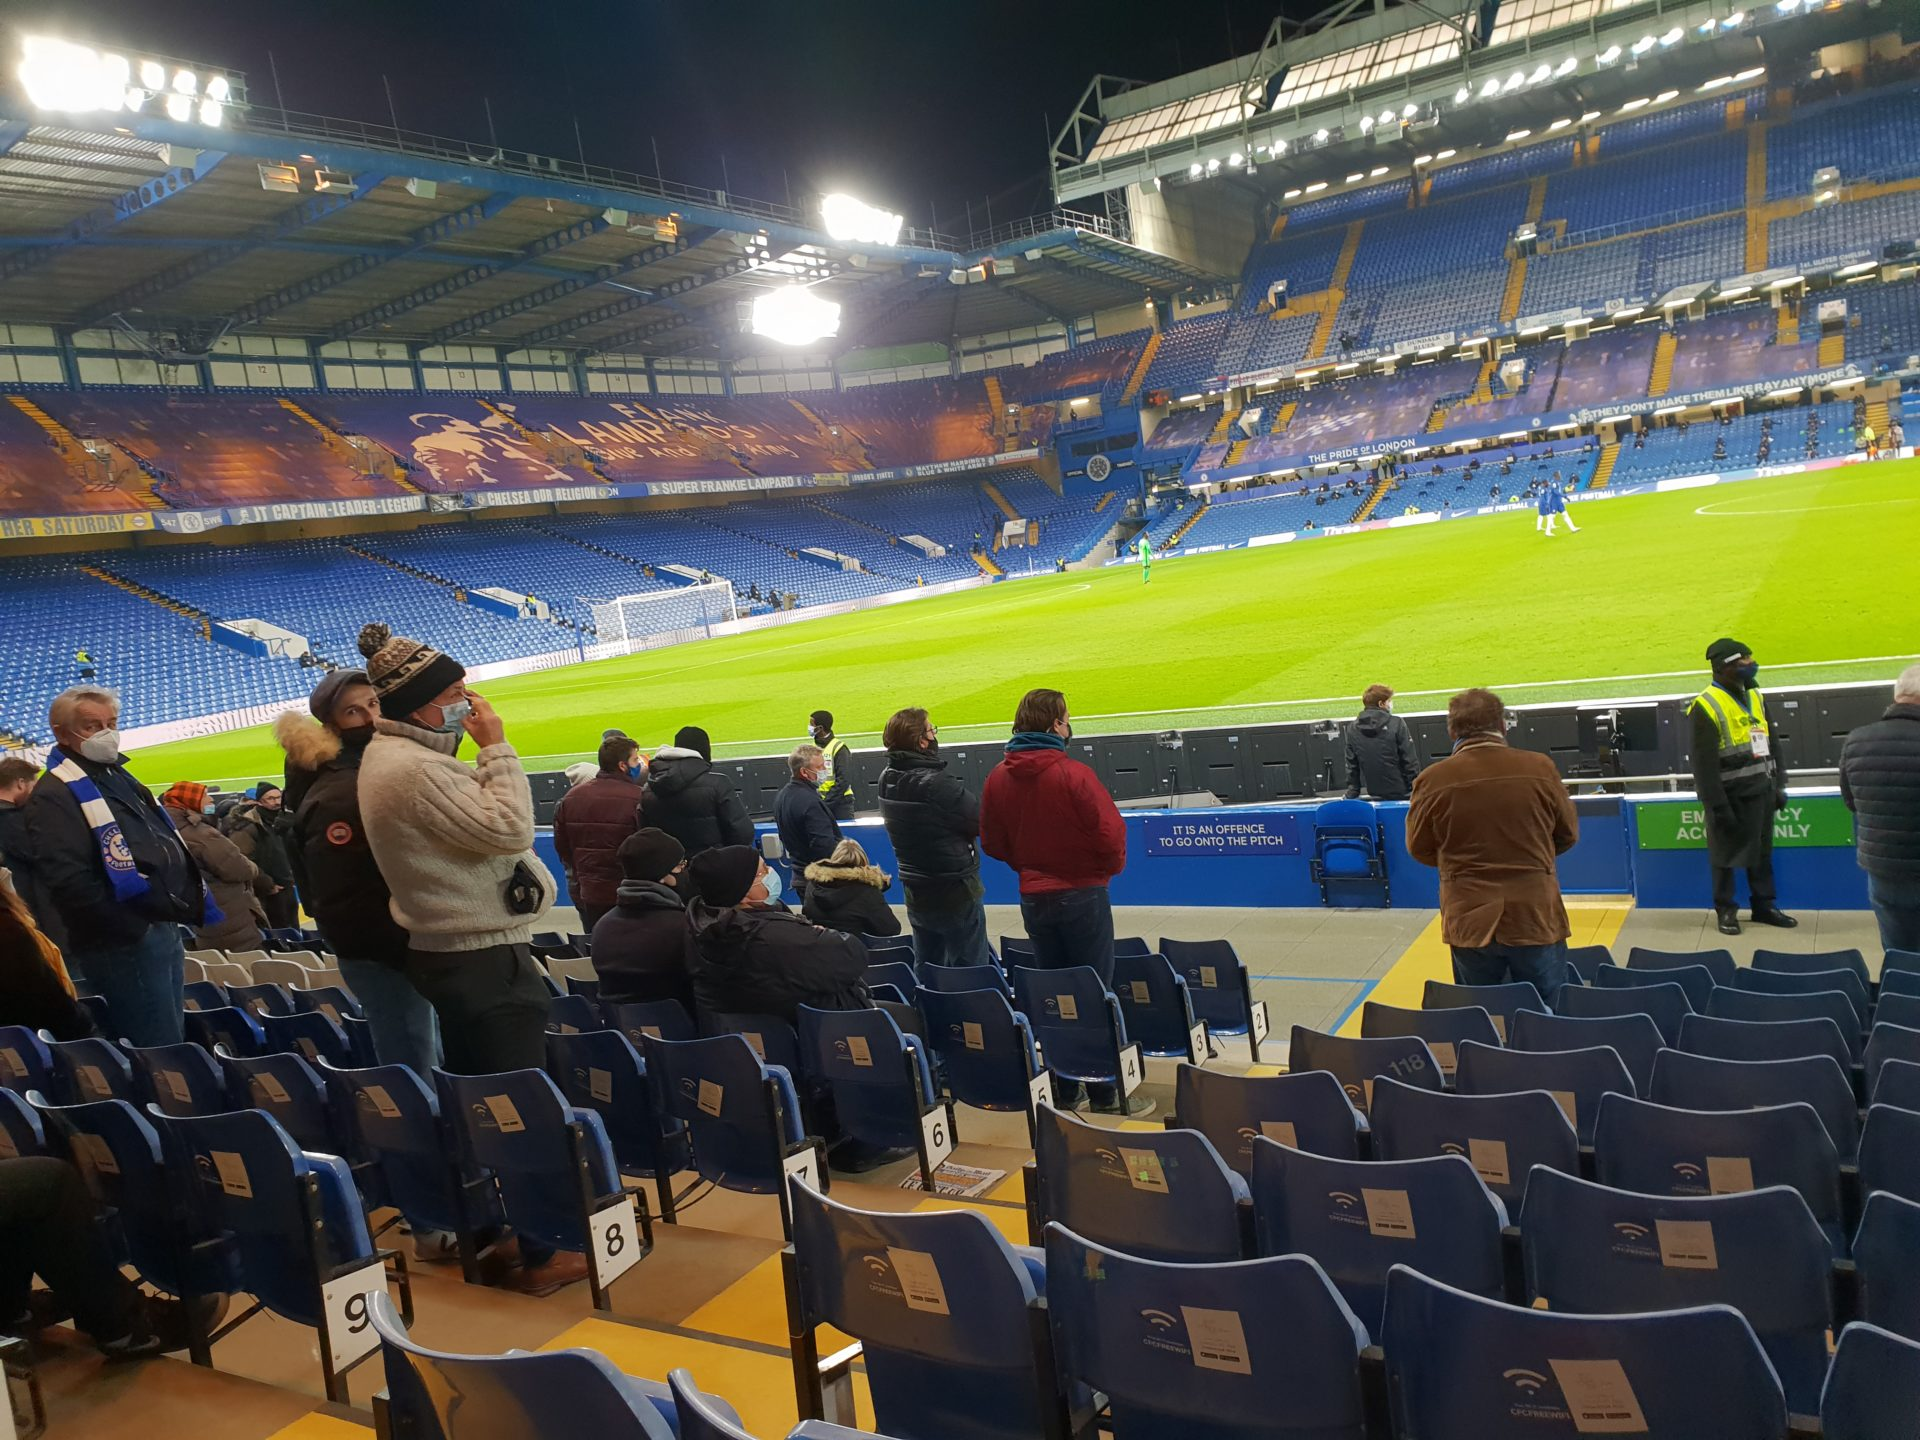 Fans Reaction To Players Fakes Screams Of Pain Shows Value of Crowds To Premier League